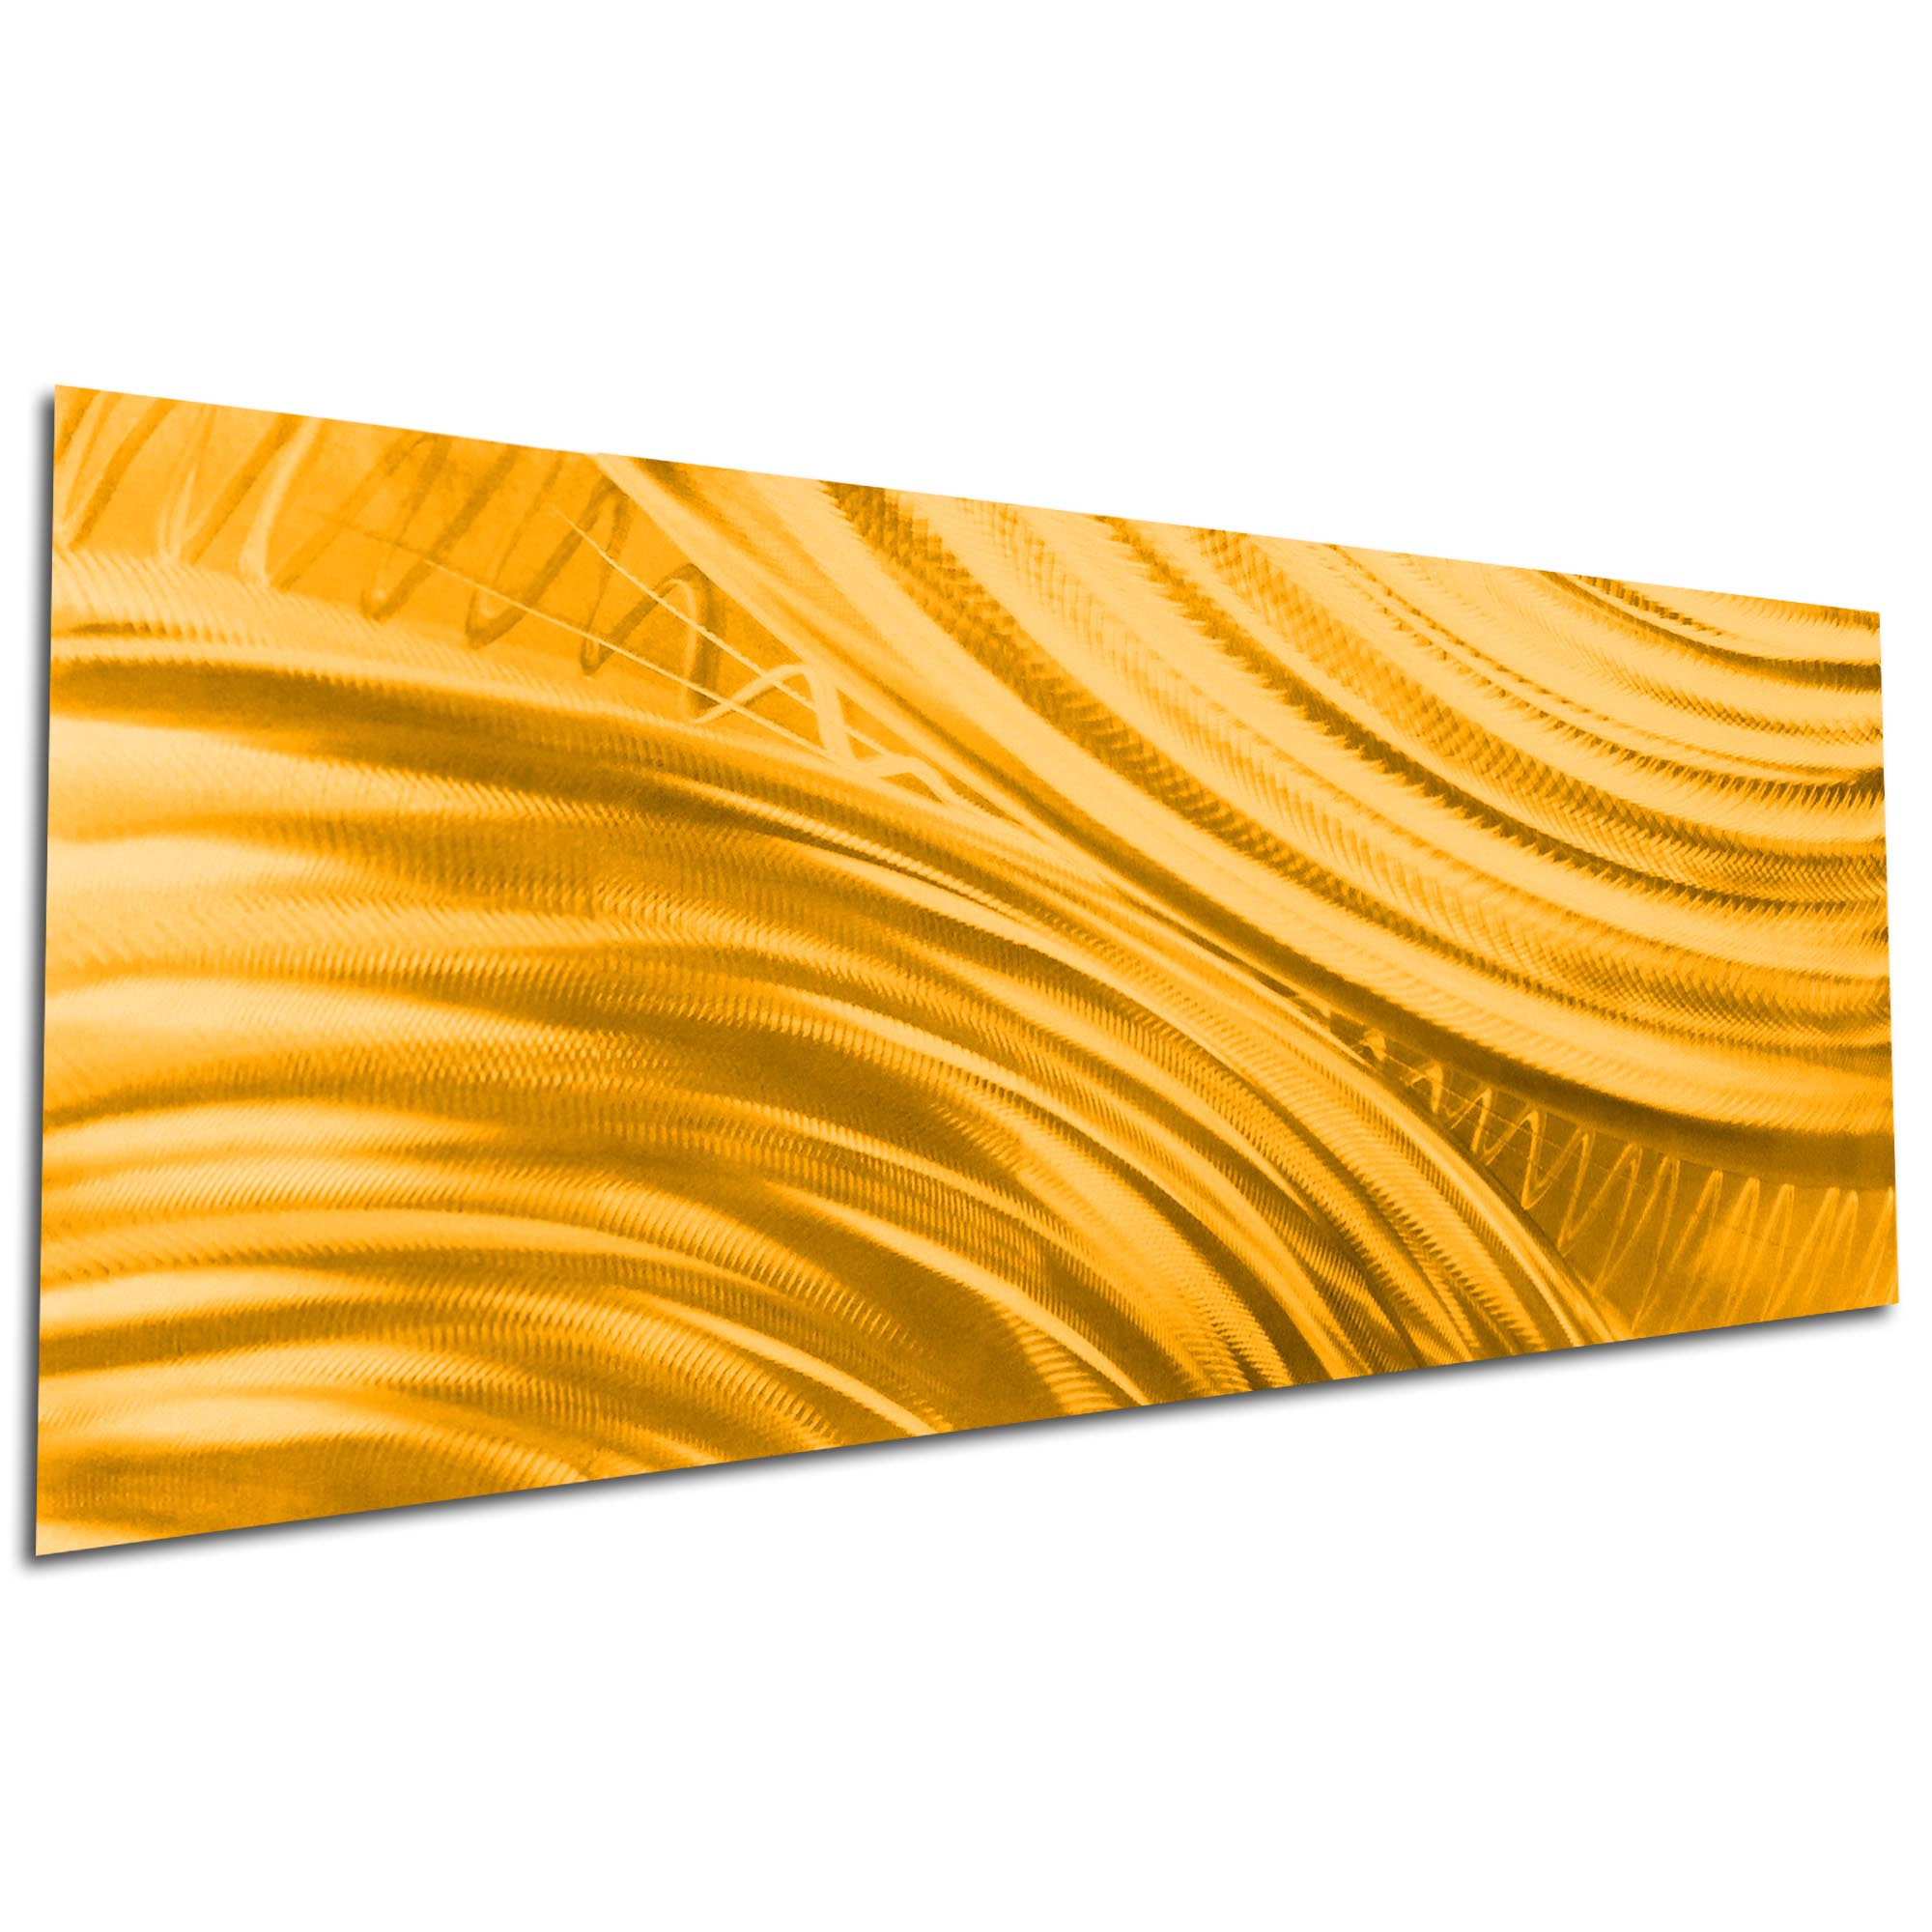 Moment of Impact Gold by Helena Martin - Original Abstract Art on Ground and Painted Metal - Image 3